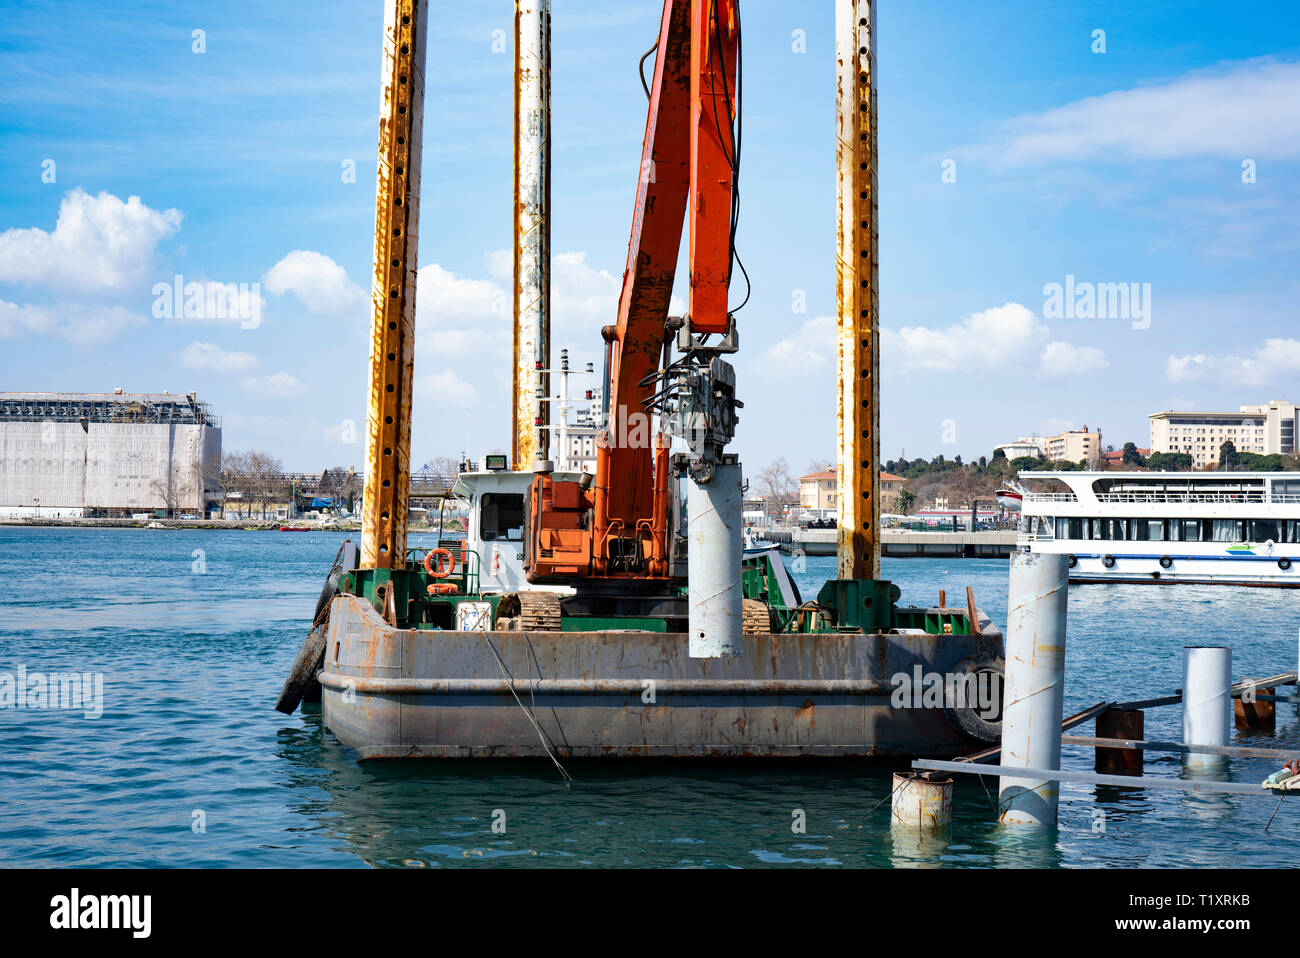 Steel Piling Stock Photos & Steel Piling Stock Images - Alamy